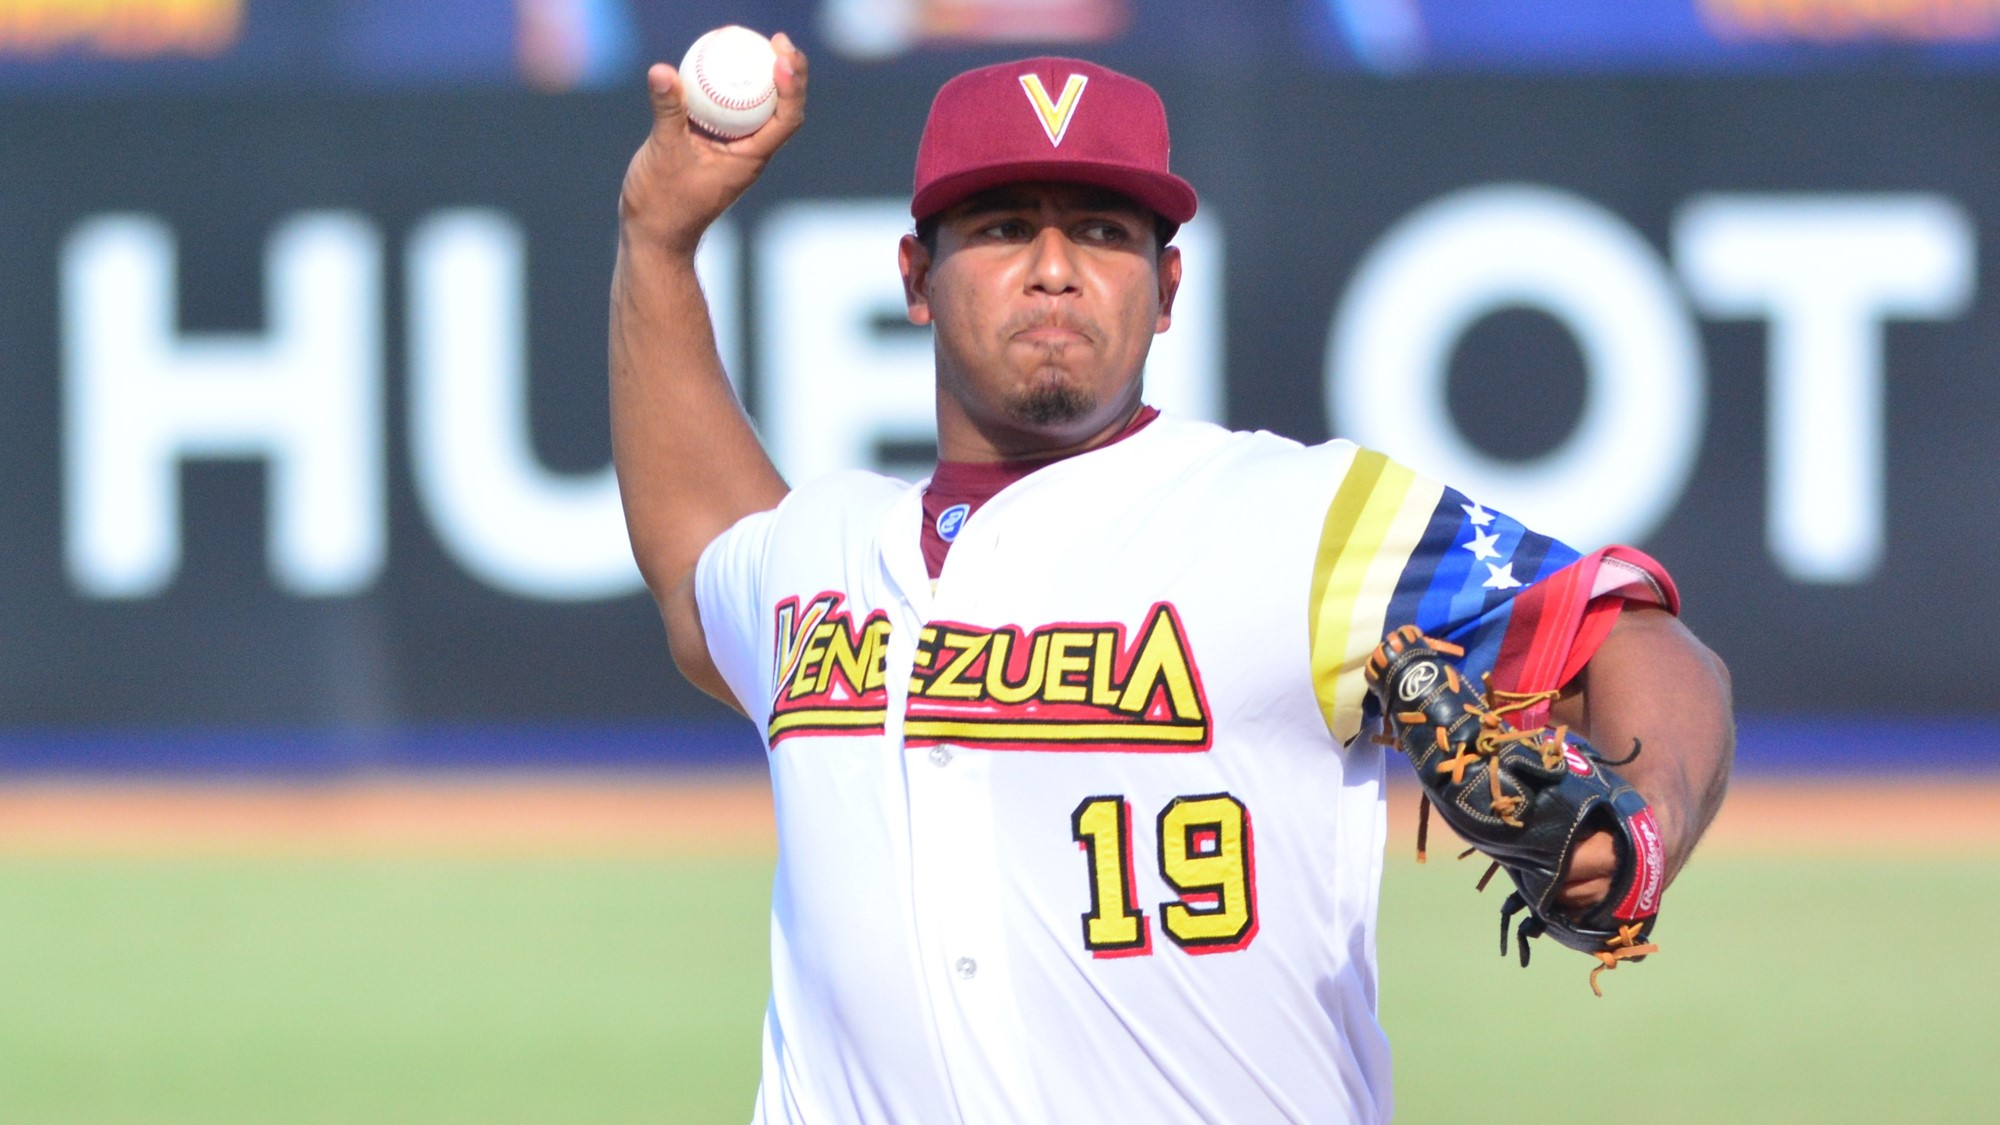 Josè Rodriguez started the game for Venezuela